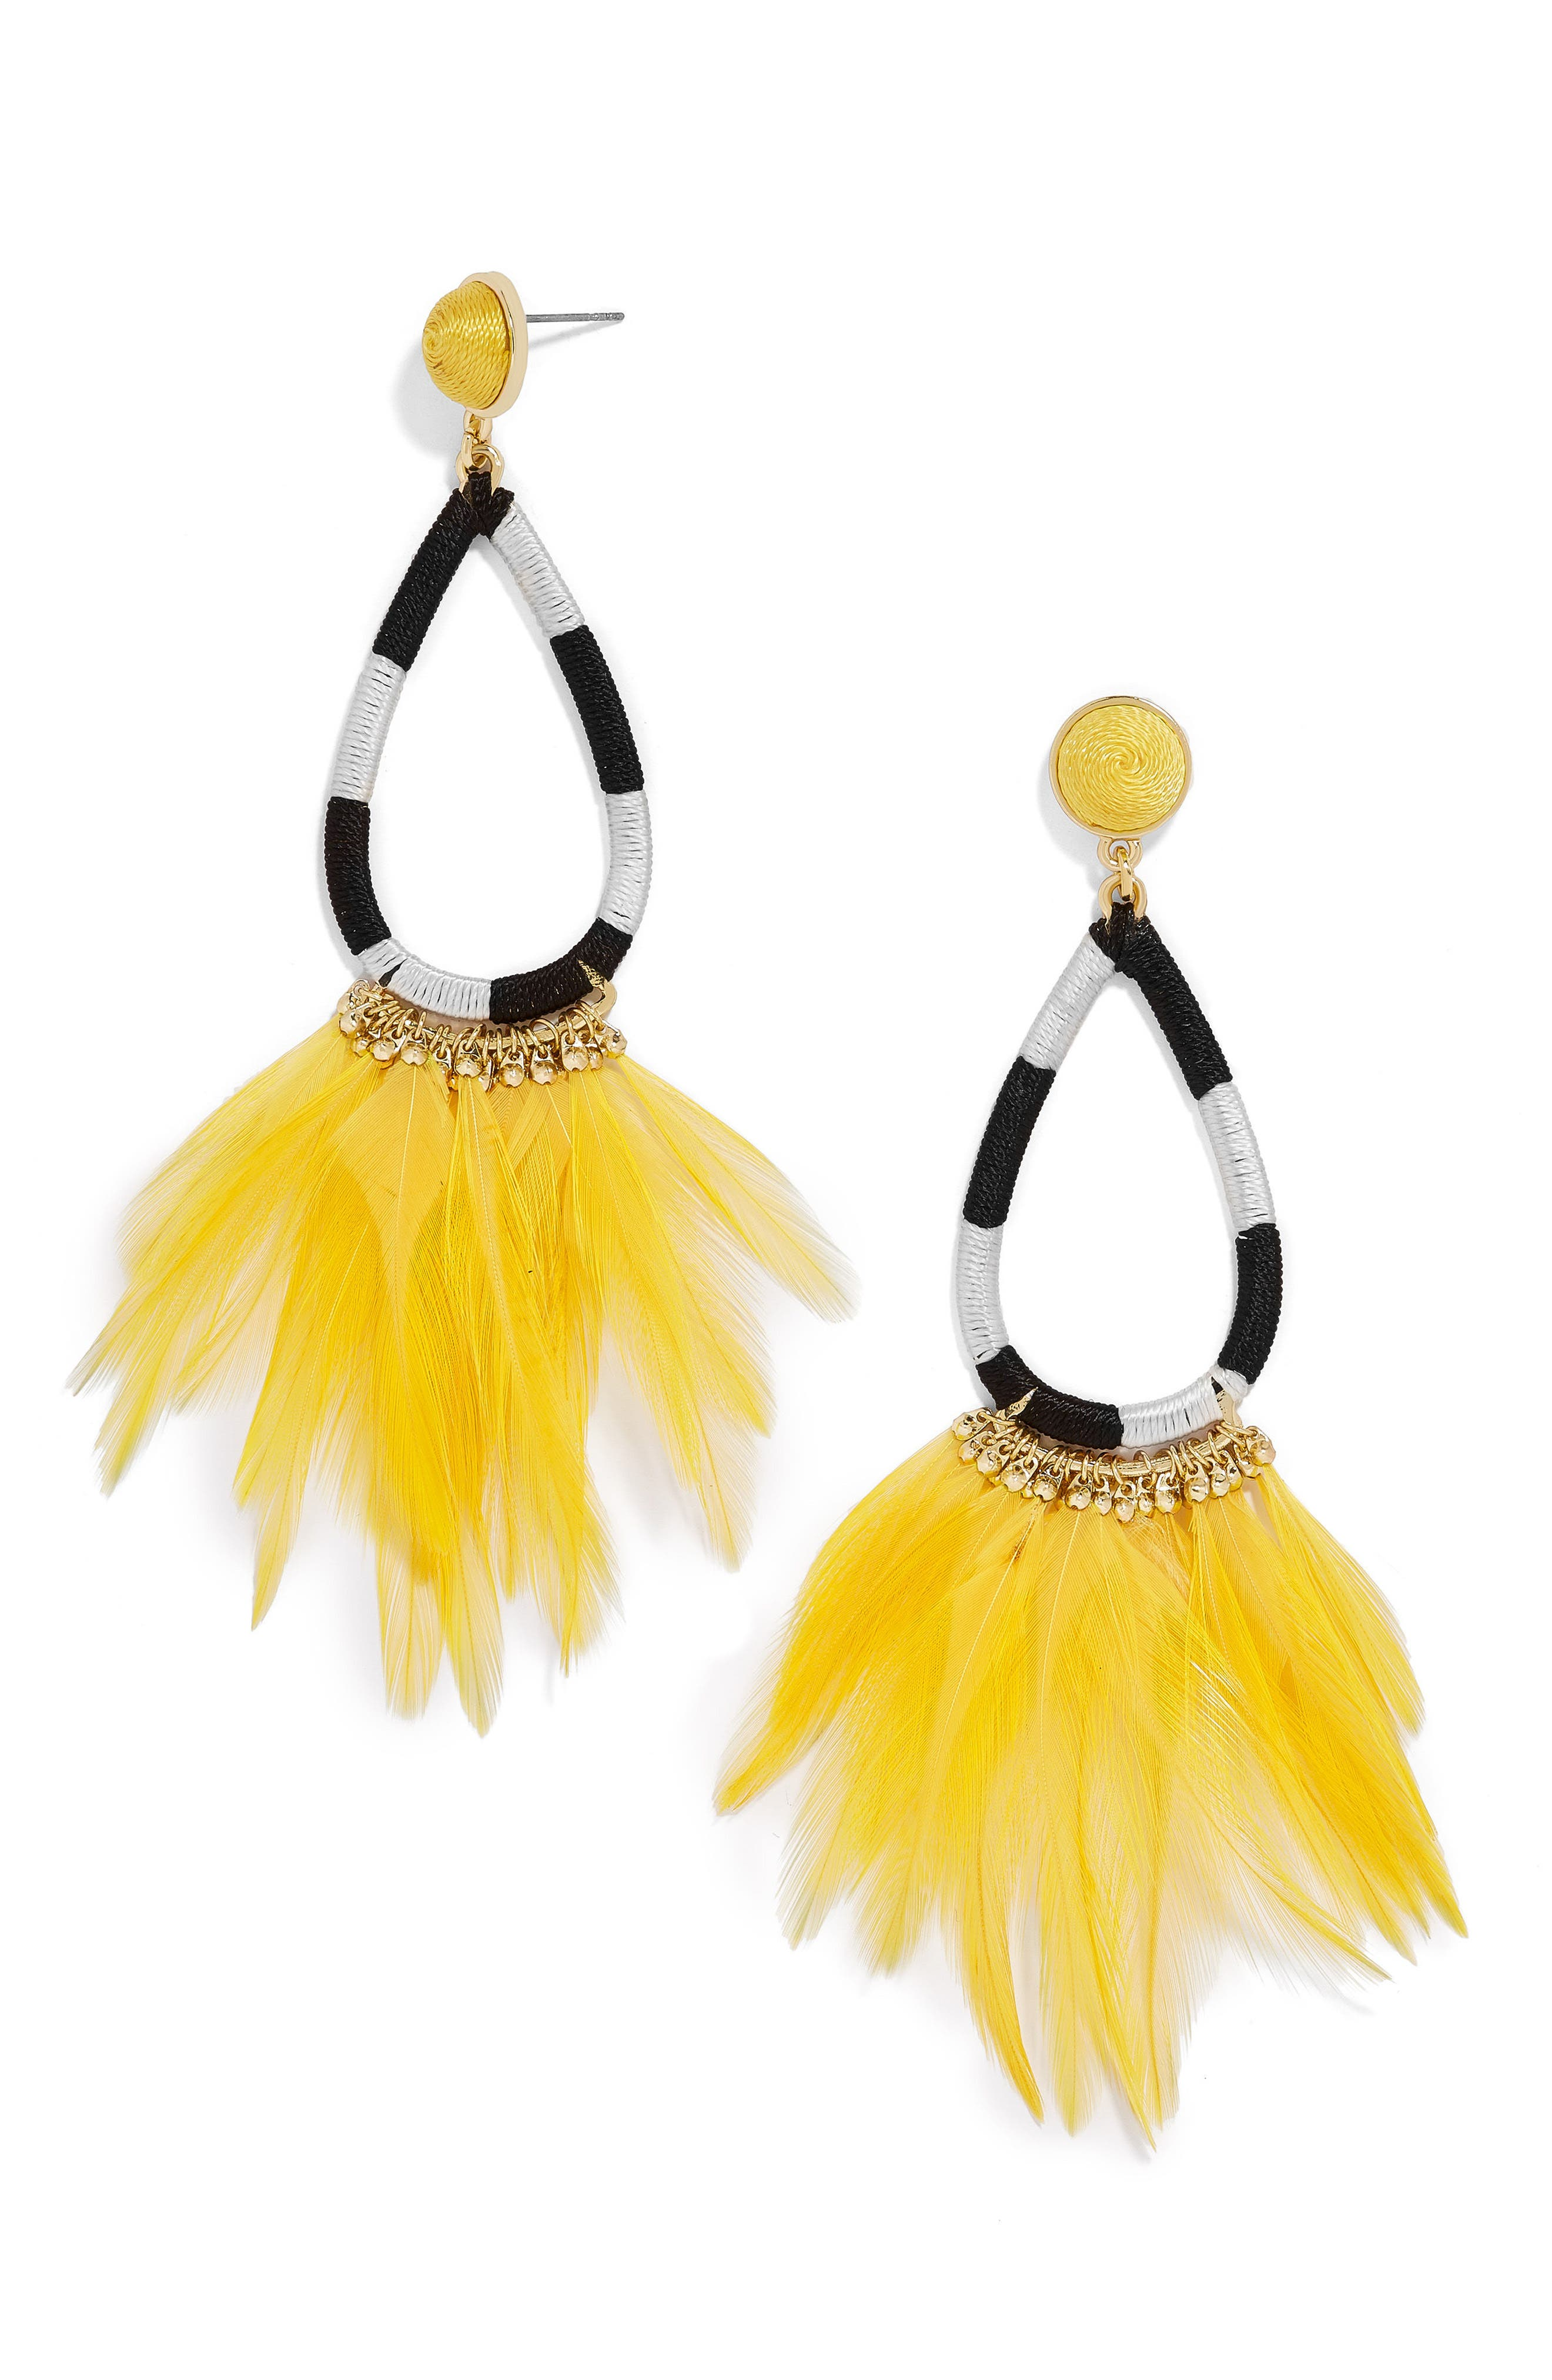 Marigold Feather Shoulder Duster Earrings,                             Main thumbnail 1, color,                             Neon Yellow